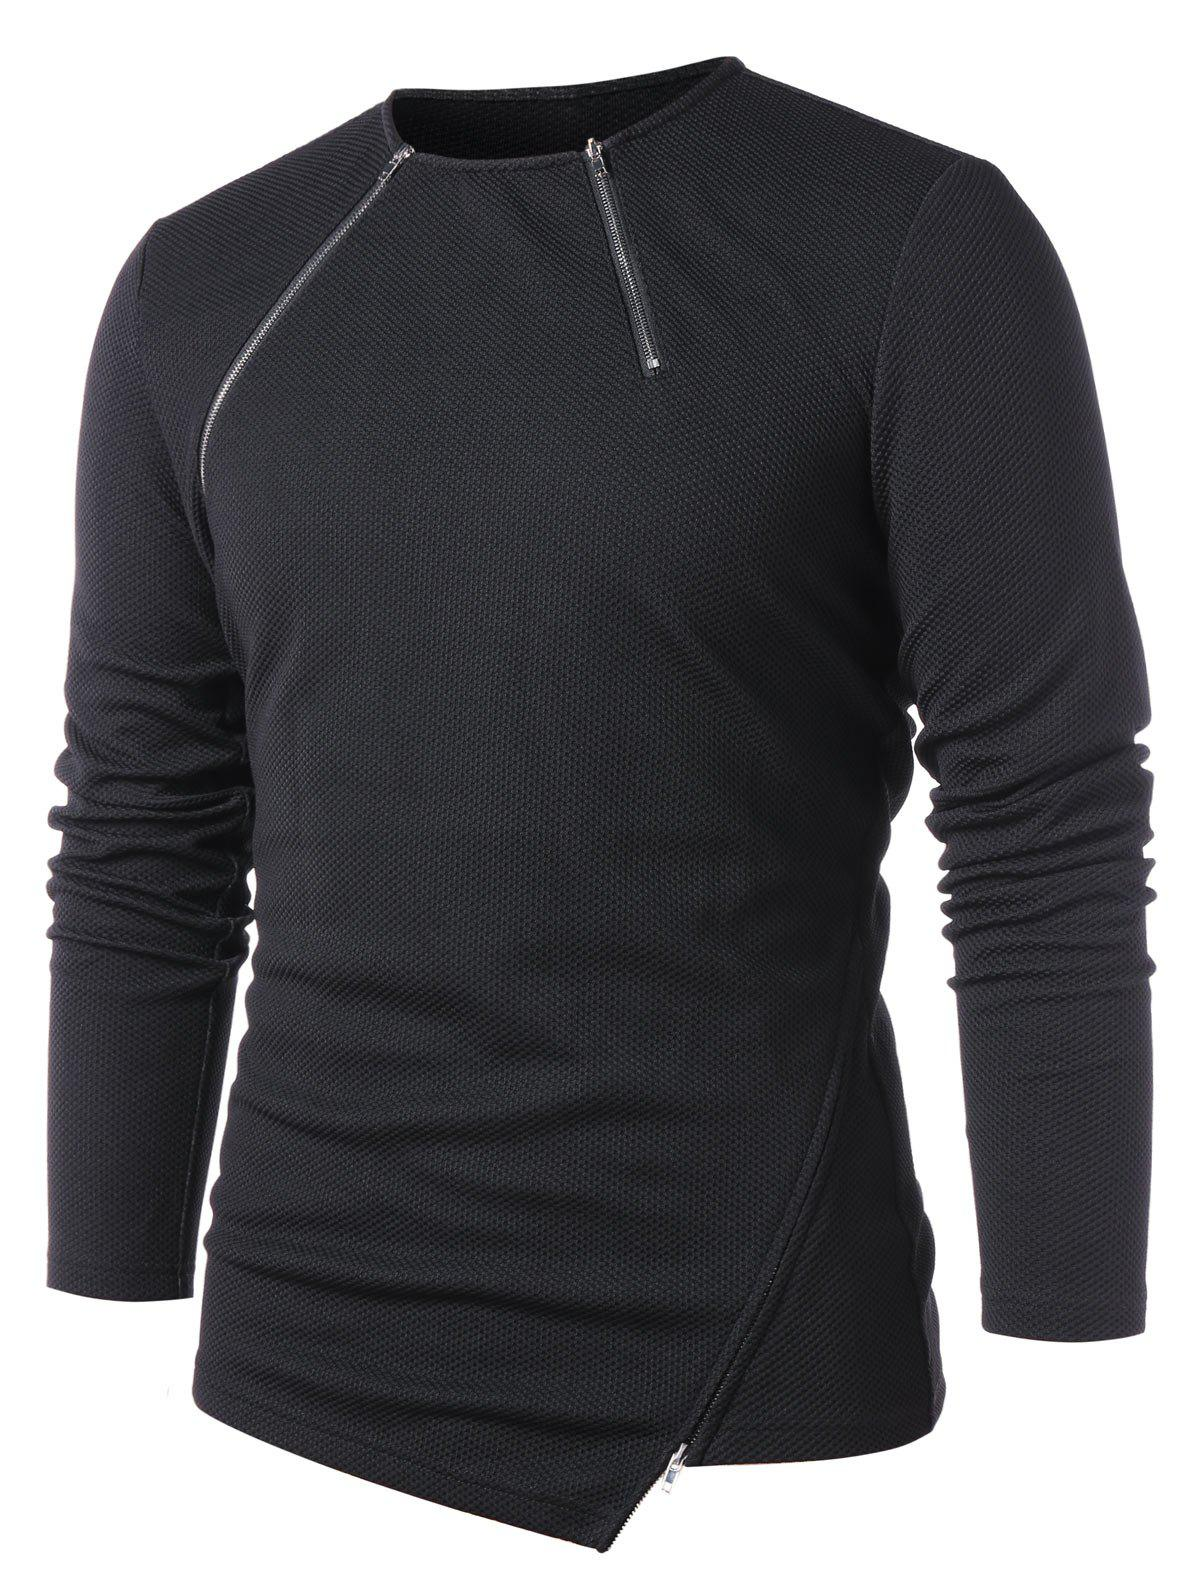 Asymmetric Round Neck Zip Hem T-shirt - BLACK XL